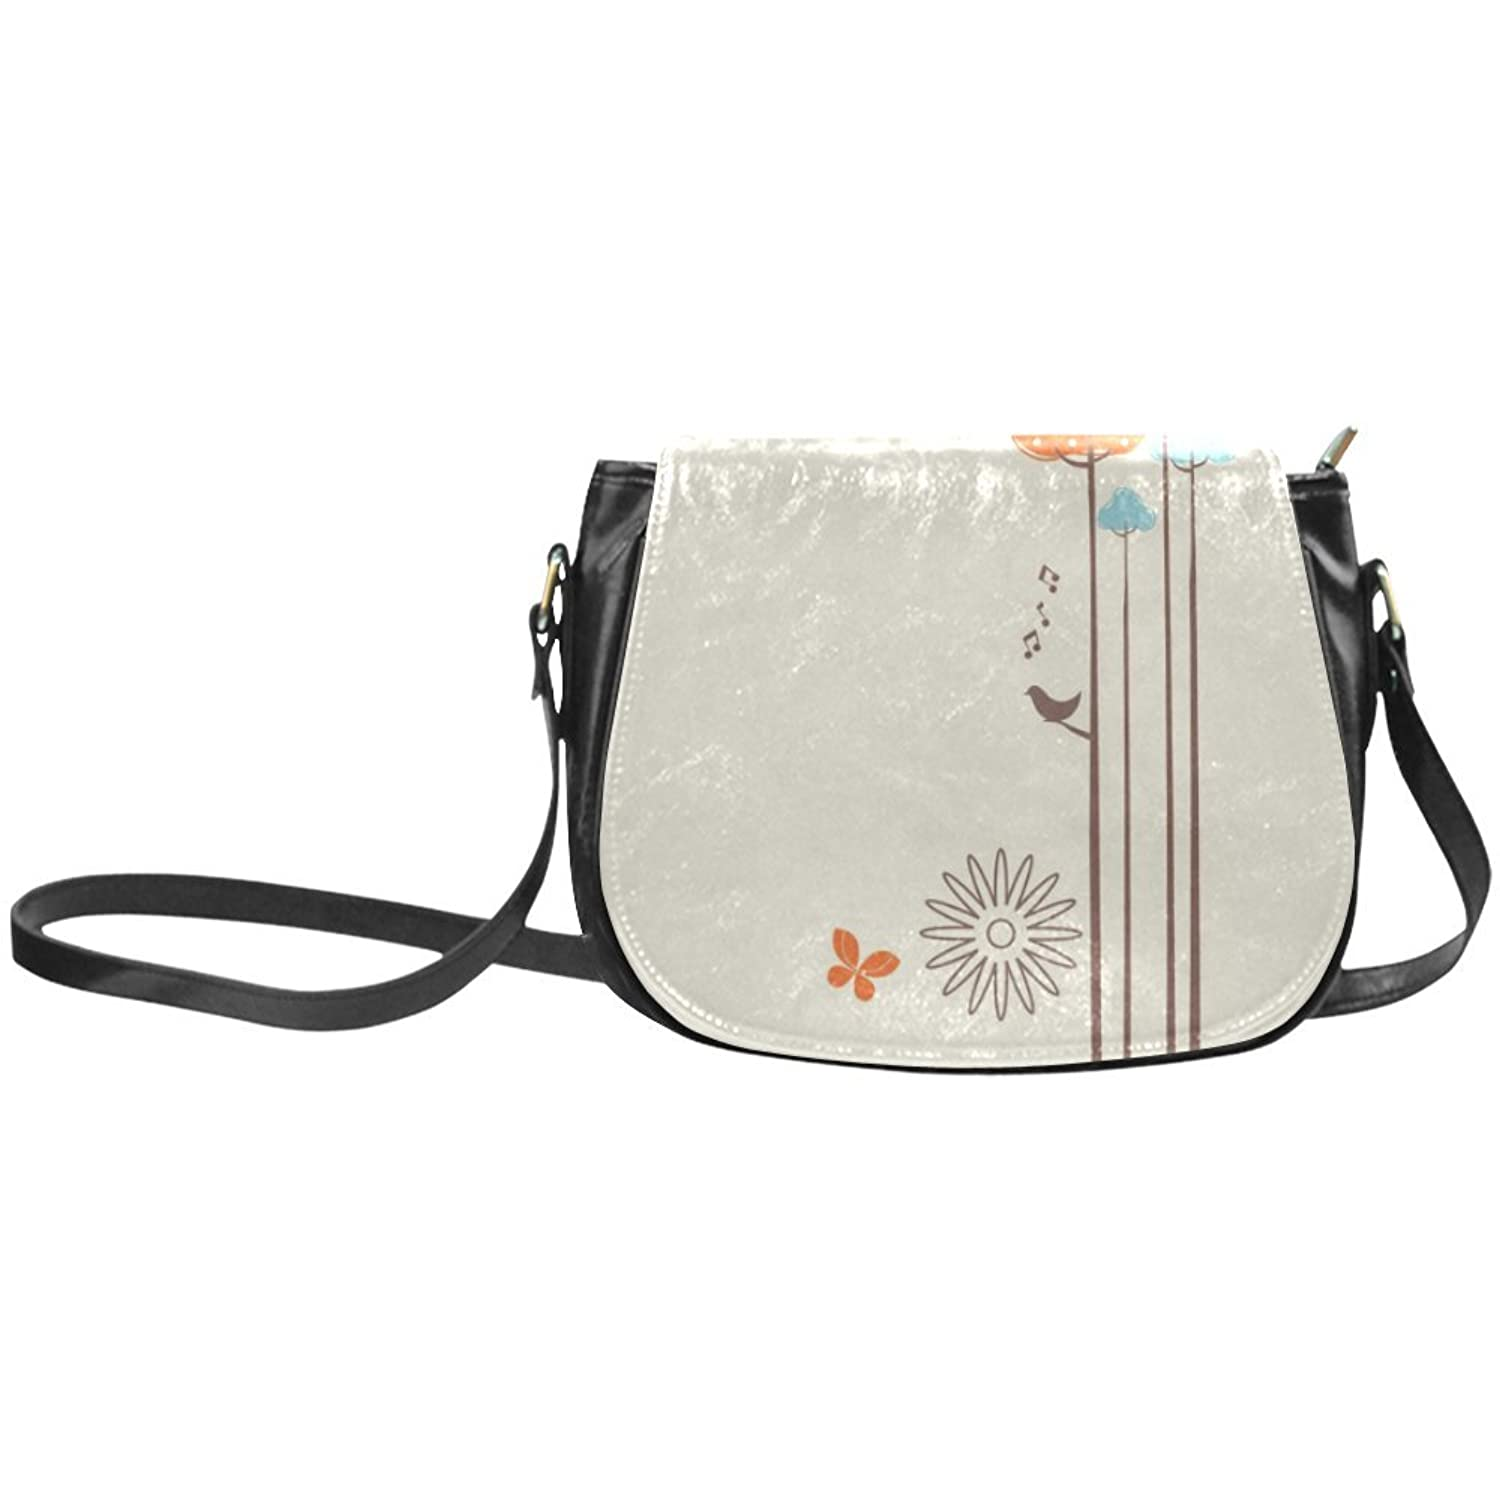 meincare Women's Cartoon Simply Flowers Butterfly PU Leather Classic Saddle Bag